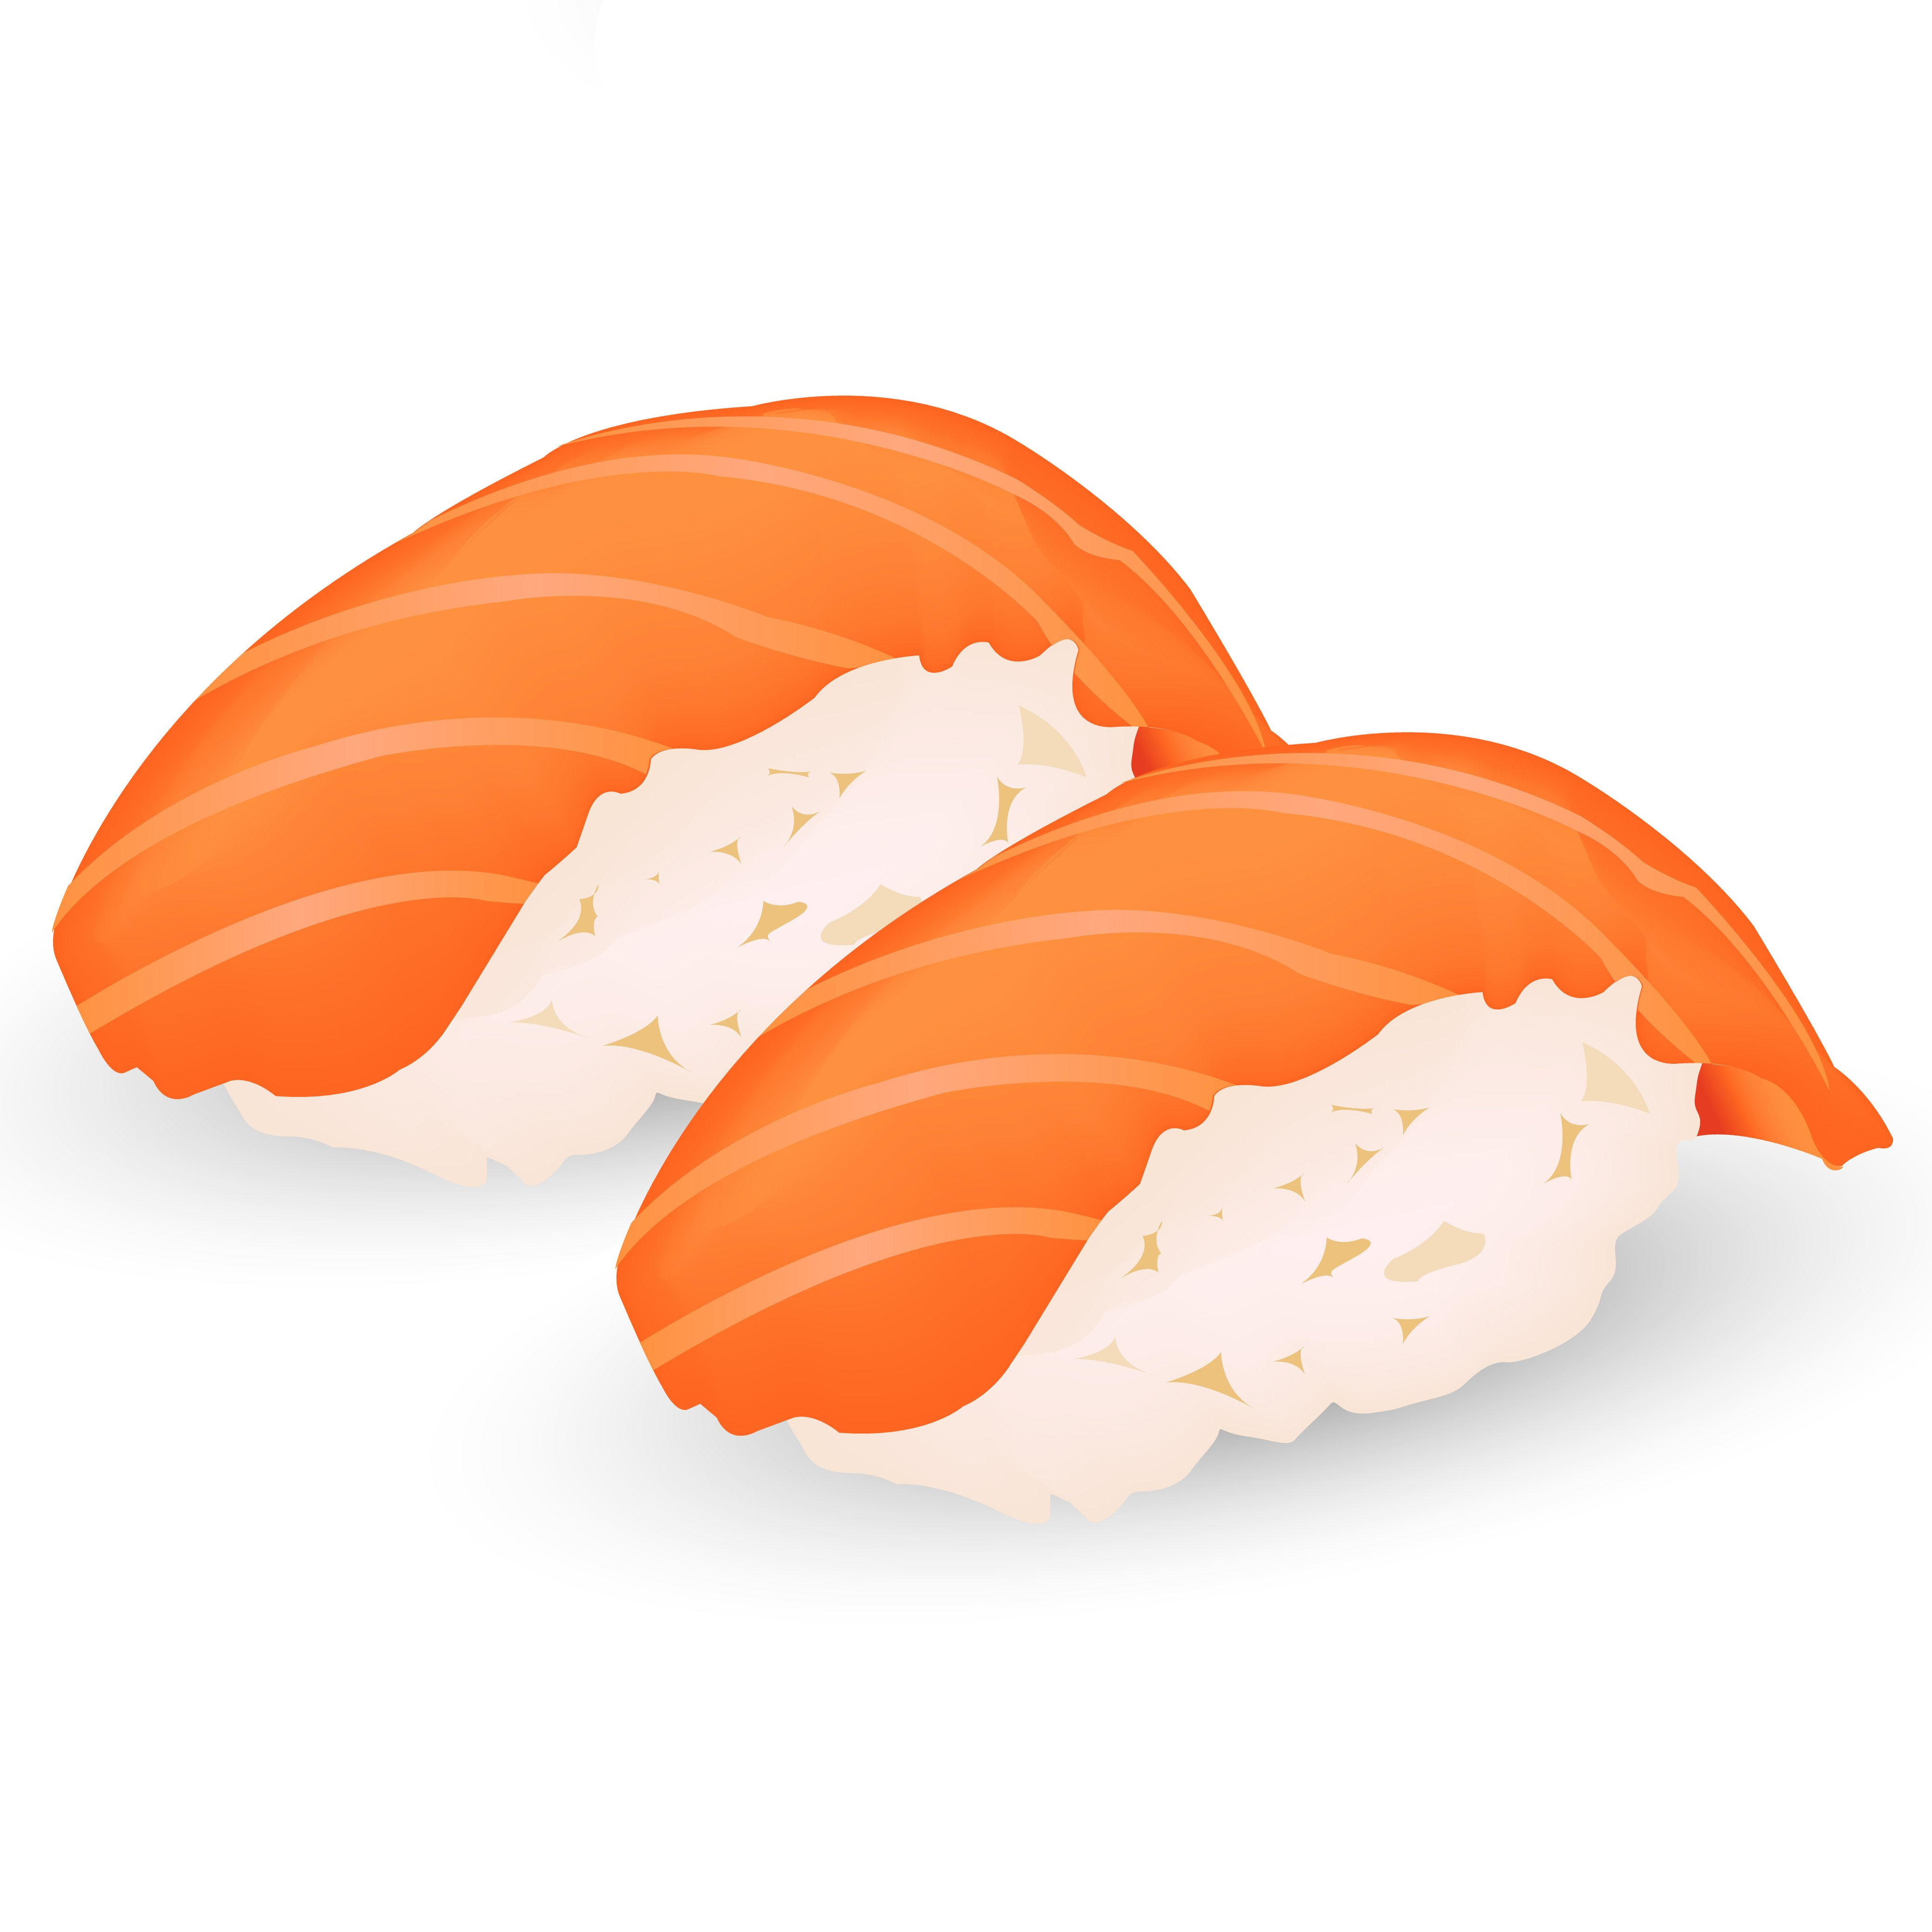 An illustration of two pieces of salmon nigiri sushi